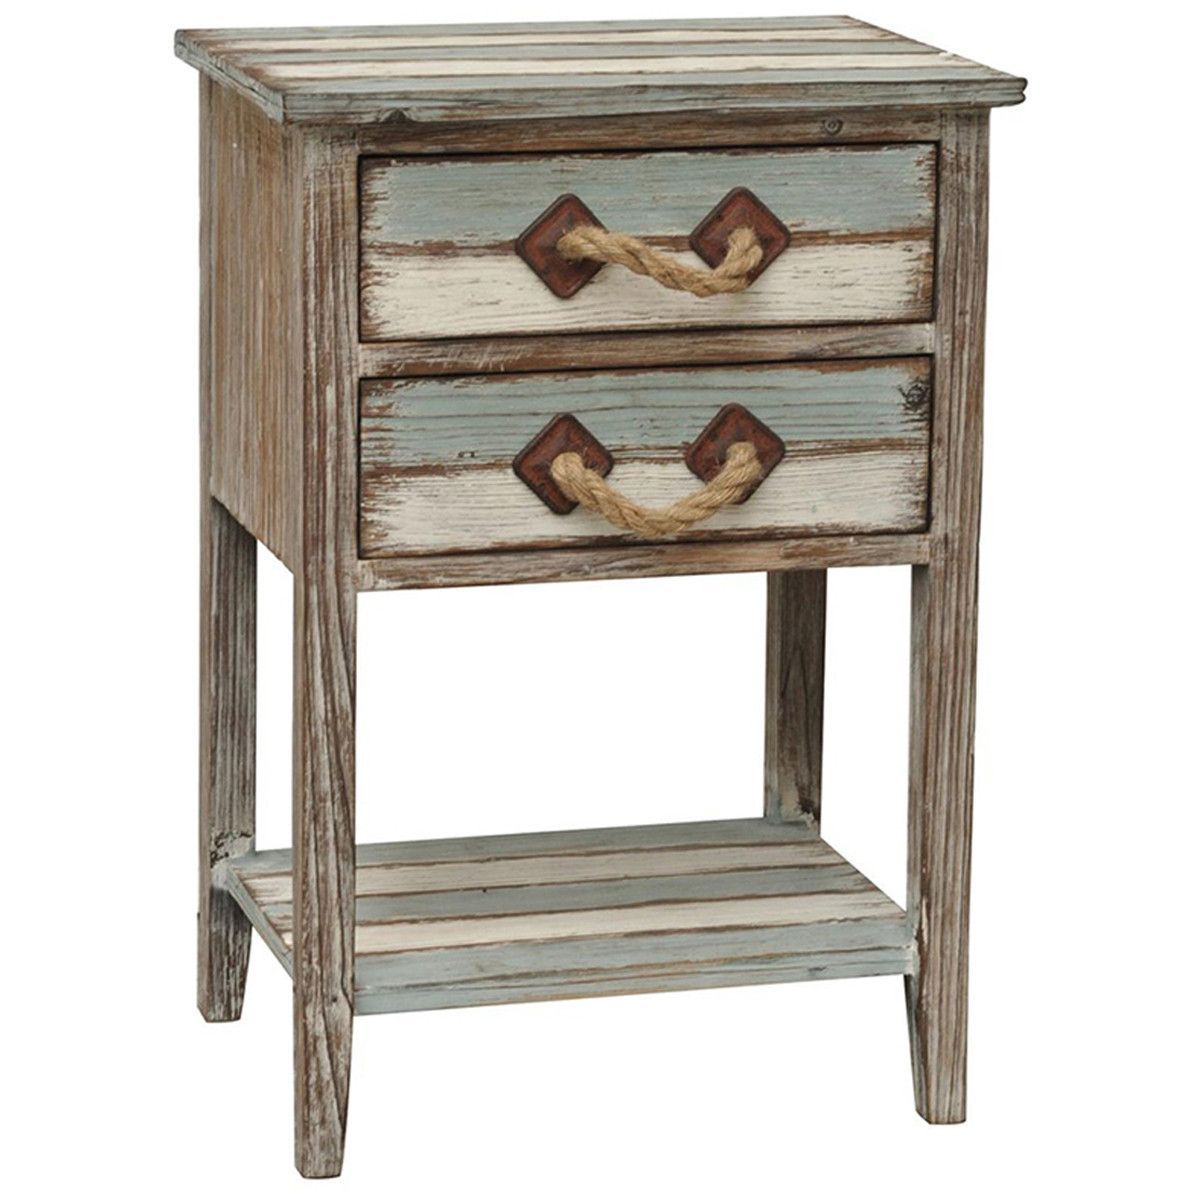 nantucket drawer weathered wood accent table furniture chest oversized modern coffee antique round pedestal patio cushions wicker outdoor small sideboard mcm grey farmhouse red